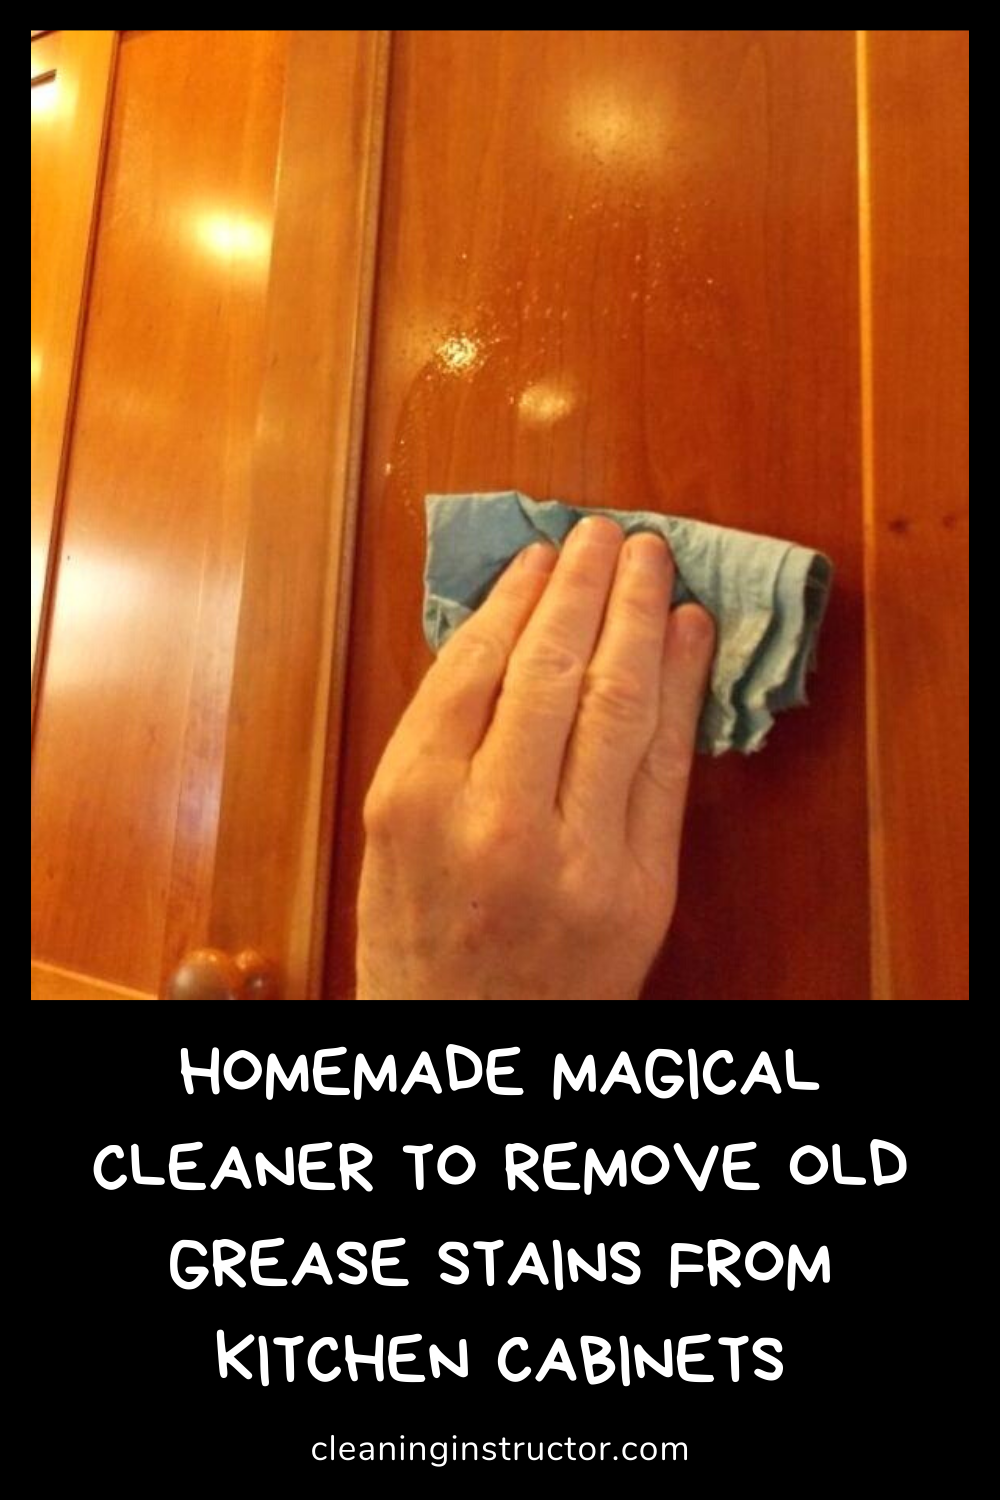 Homemade Magical Cleaner To Remove Old Grease Stains From Kitchen Cabinets Grease Stains Cleaning Hacks Stains